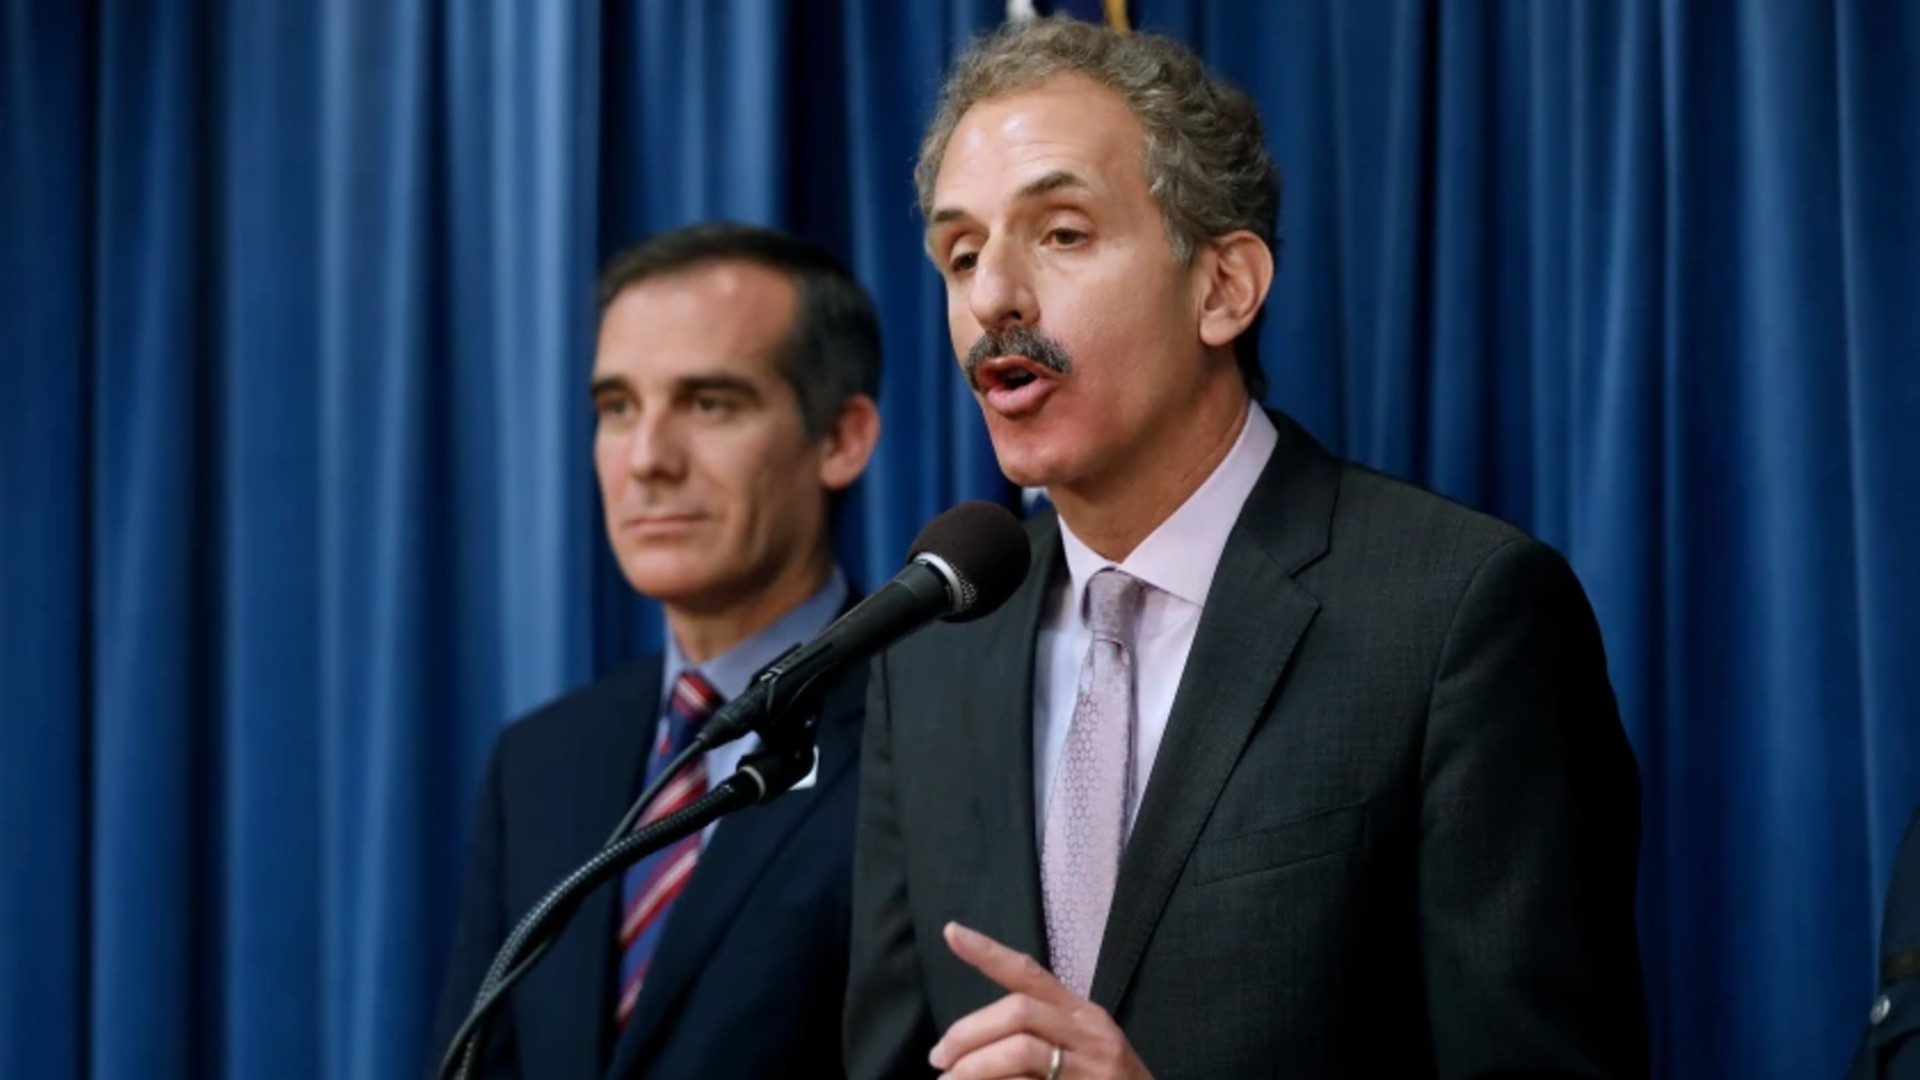 Los Angeles City Atty. Mike Feuer, standing alongside Mayor Eric Garcetti, is one of only two elected officials currently running for mayor in 2022.(Gary Coronado/Los Angeles Times)